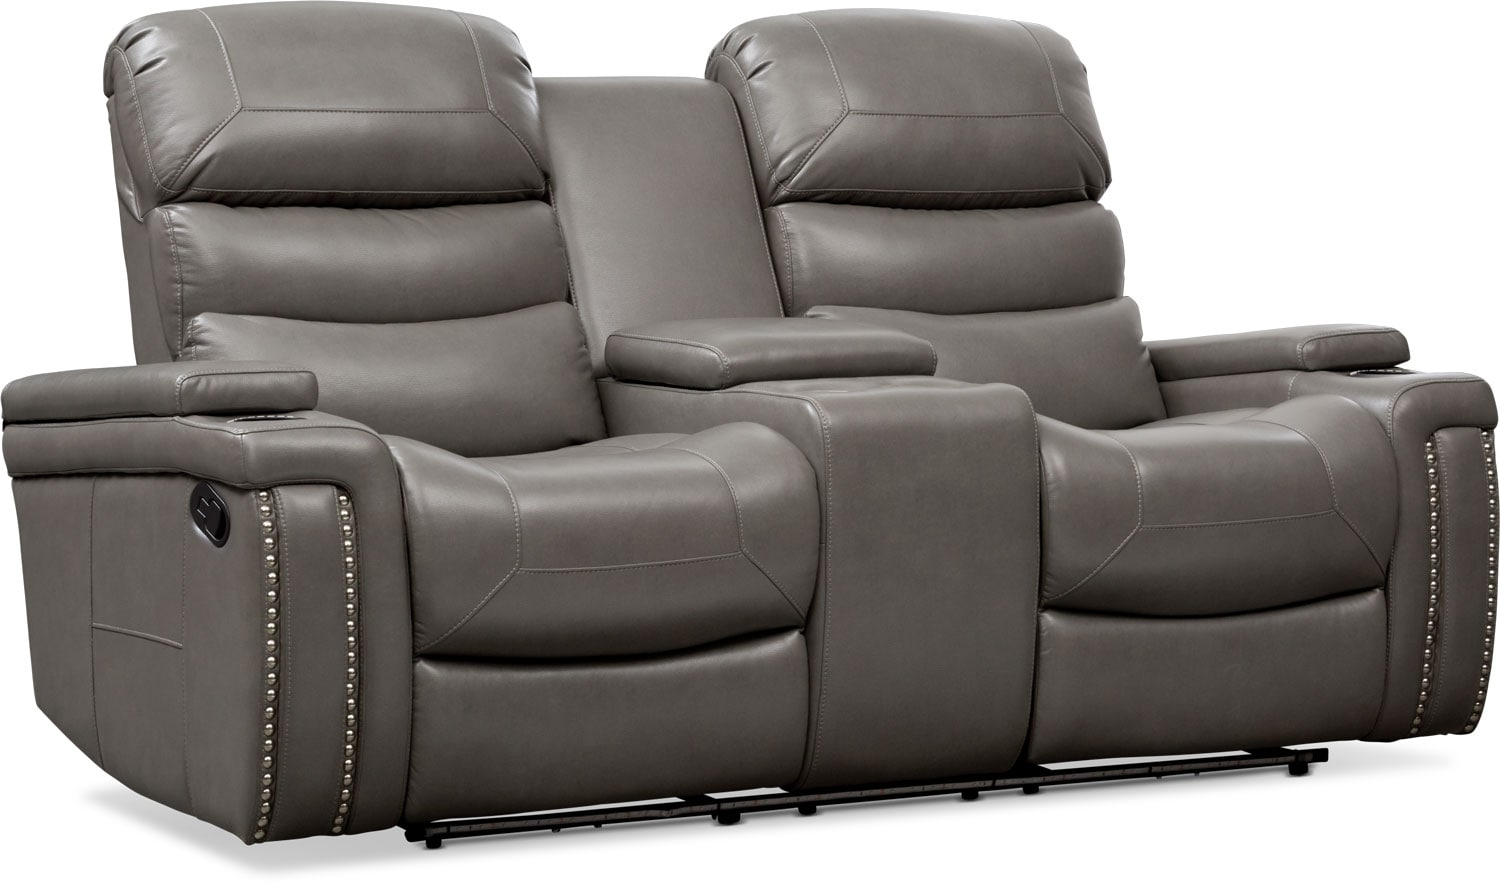 Living Room Furniture - Jackson Manual Reclining Loveseat